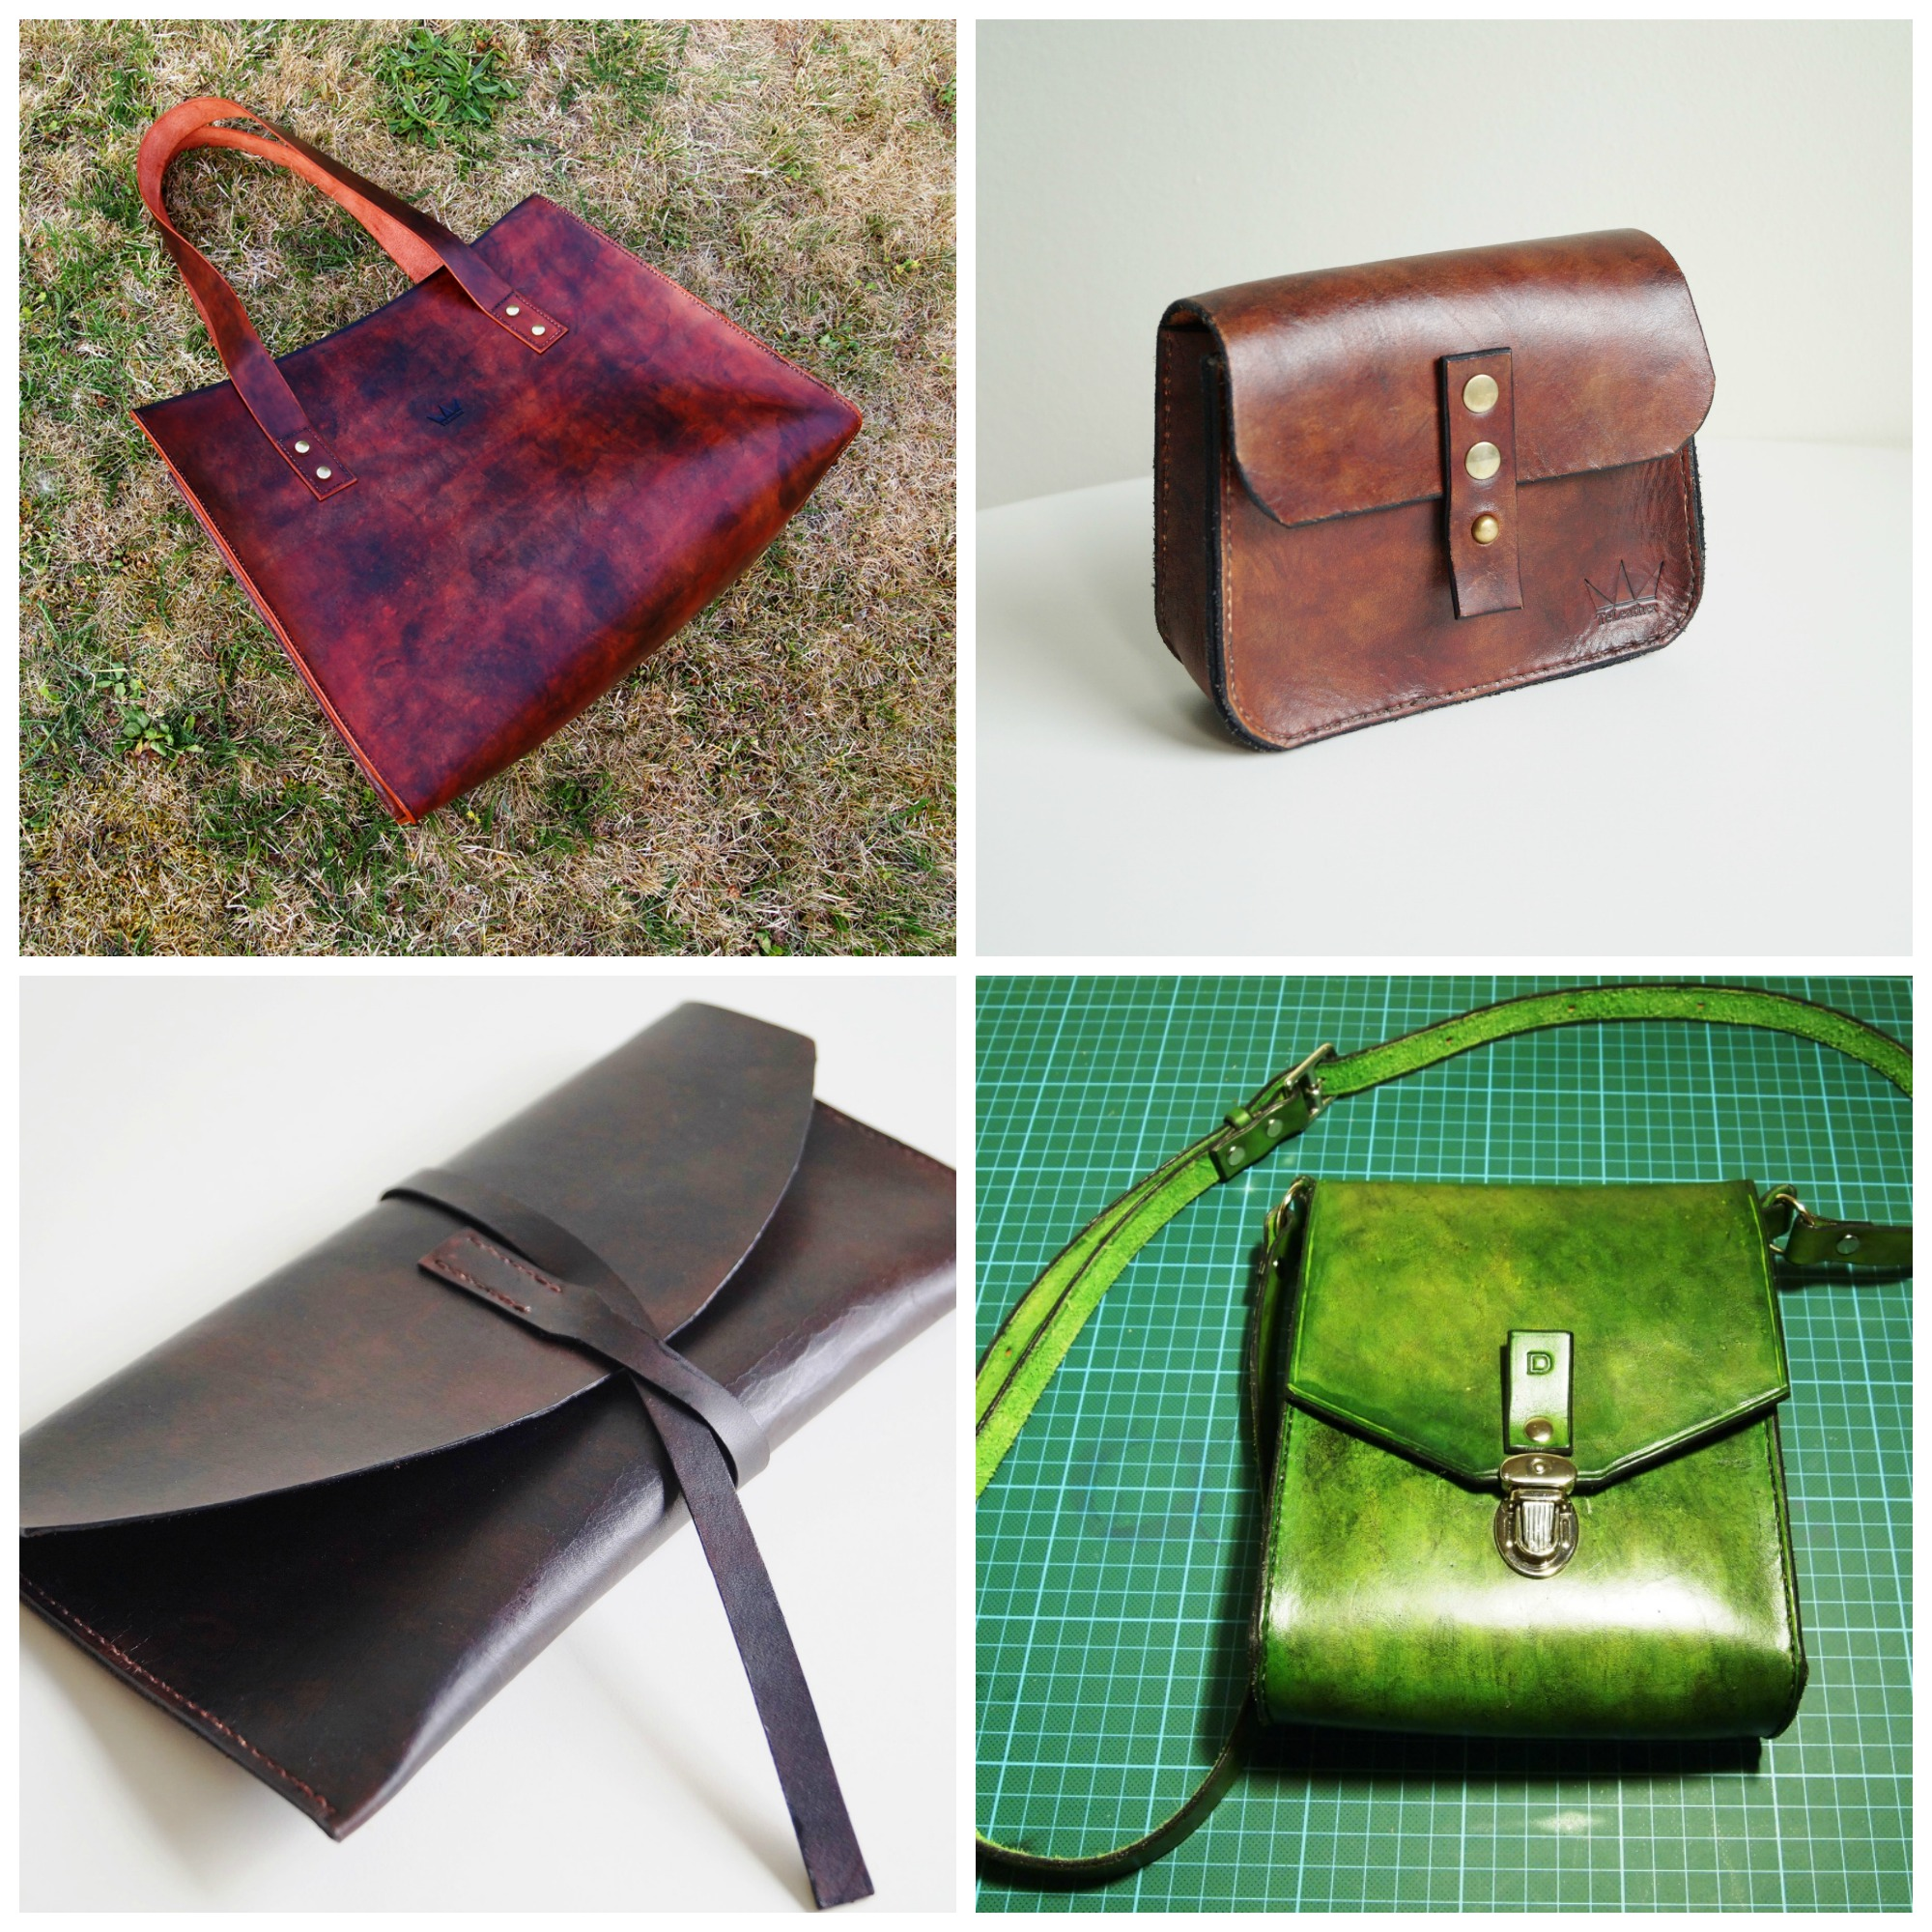 Handmade leather bags from TeLeather